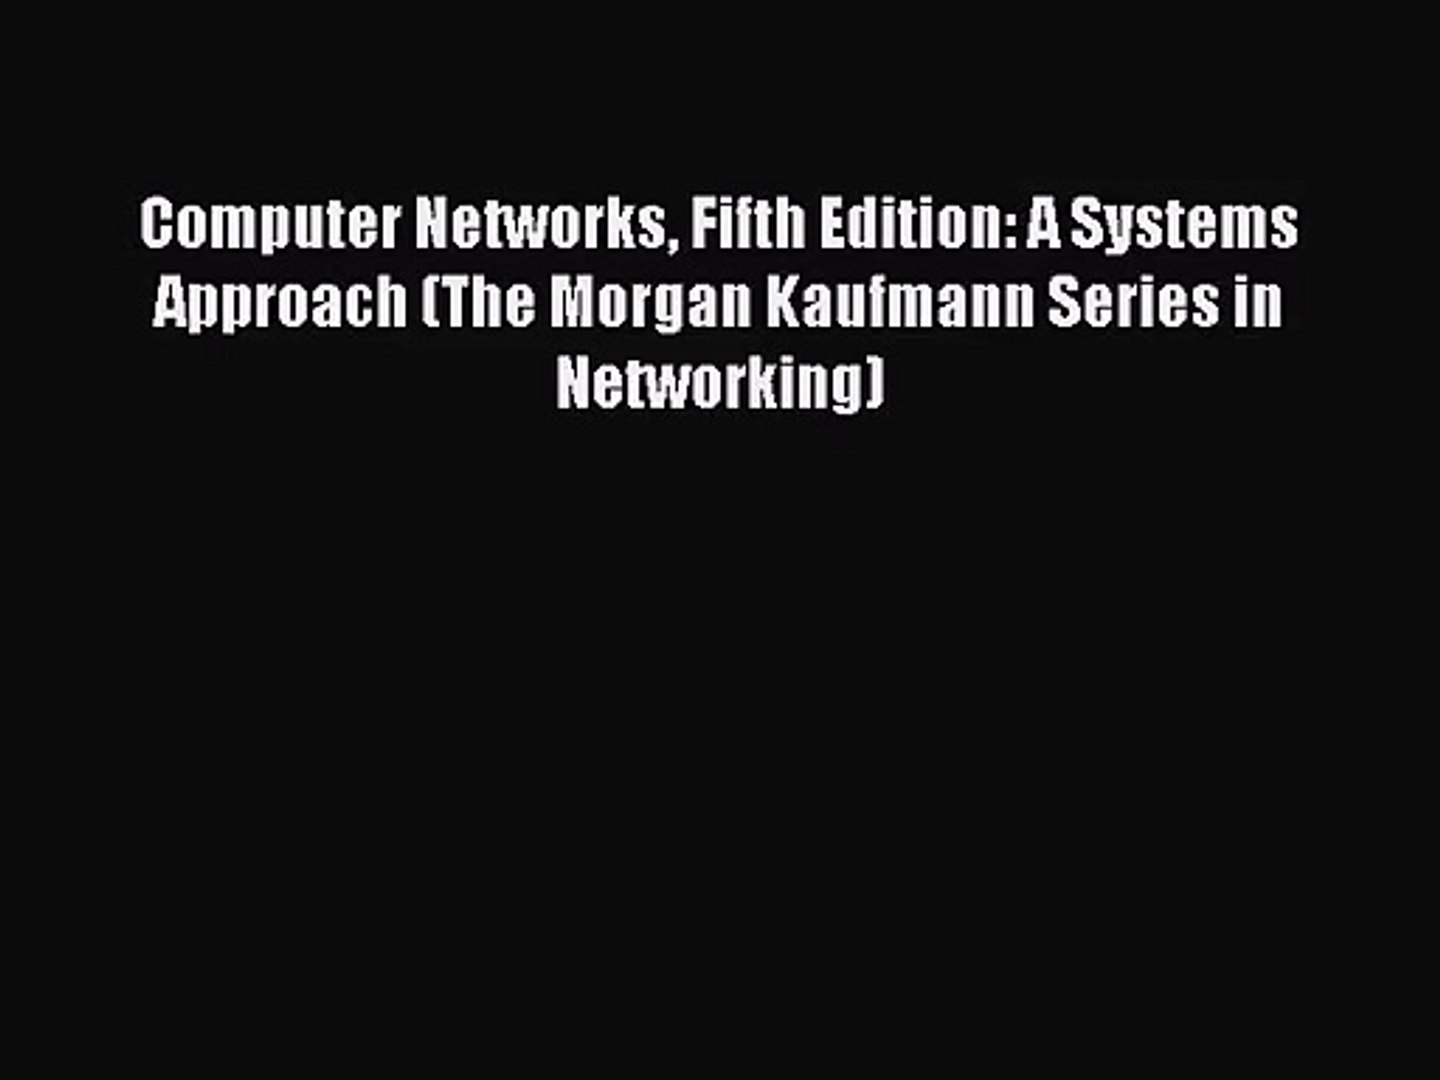 Computer Networks ISE: A Systems Approach / Edition 4